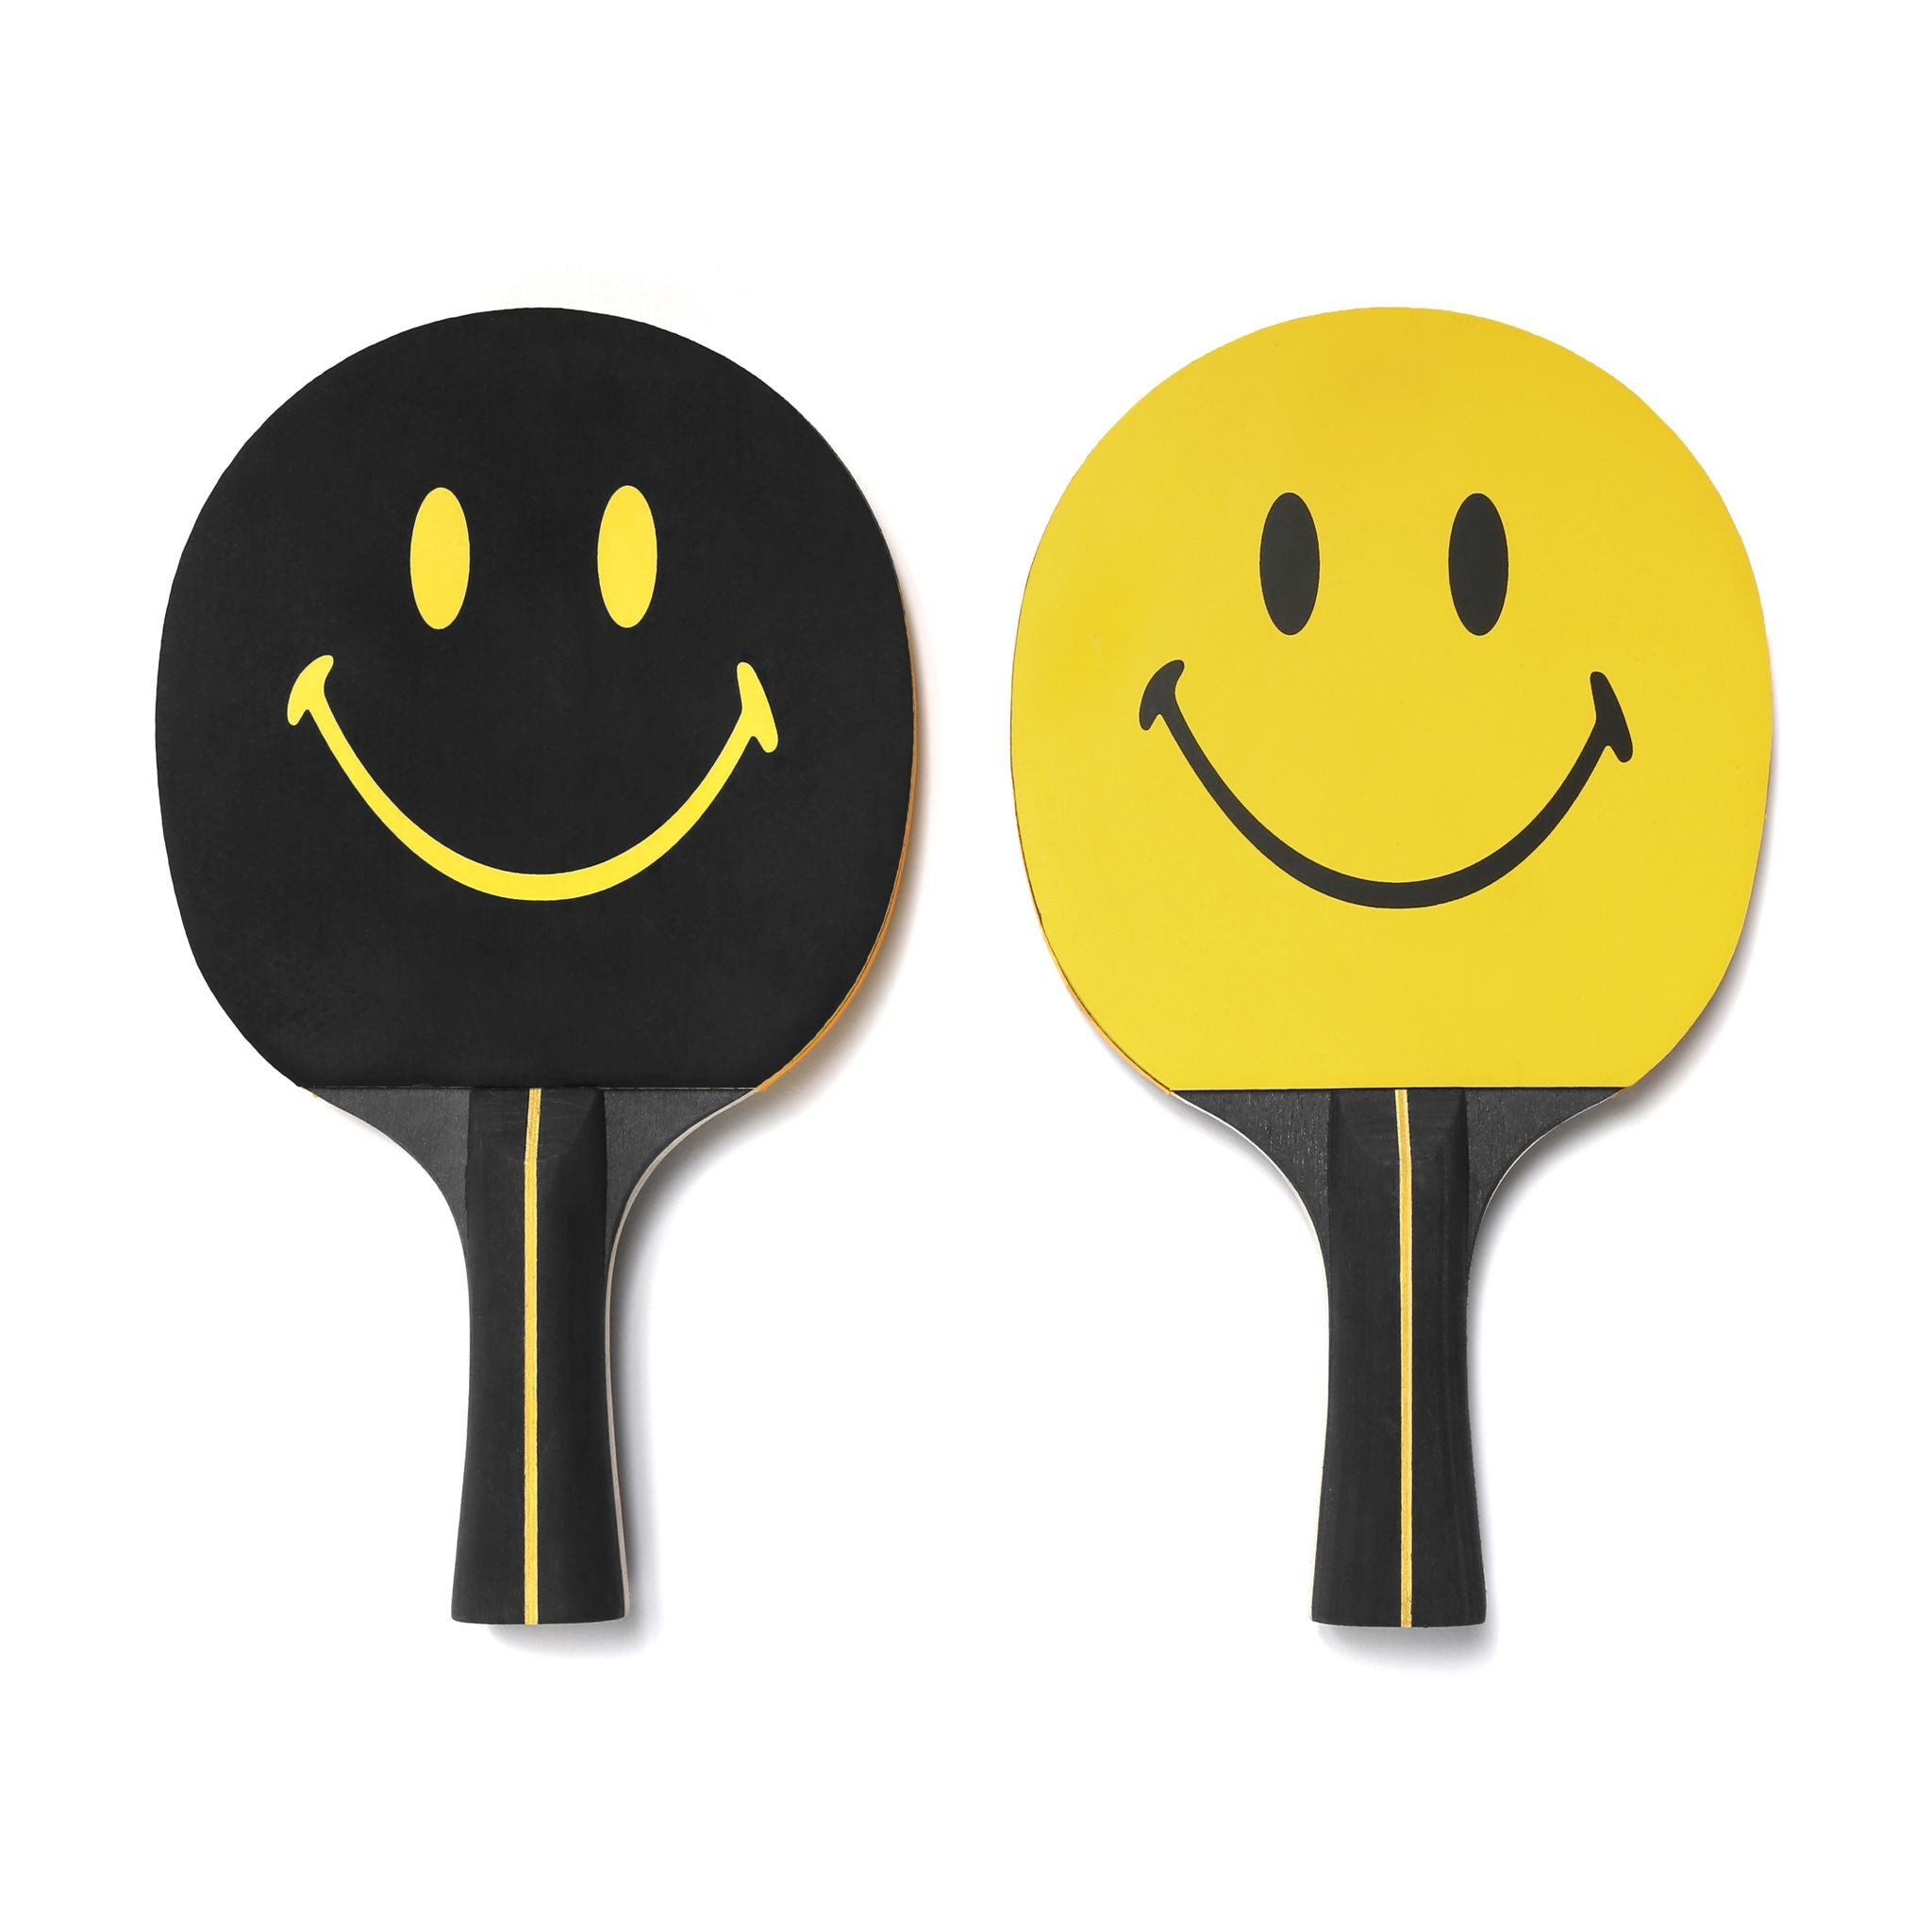 SMILEY PING PONG PADDLE SET